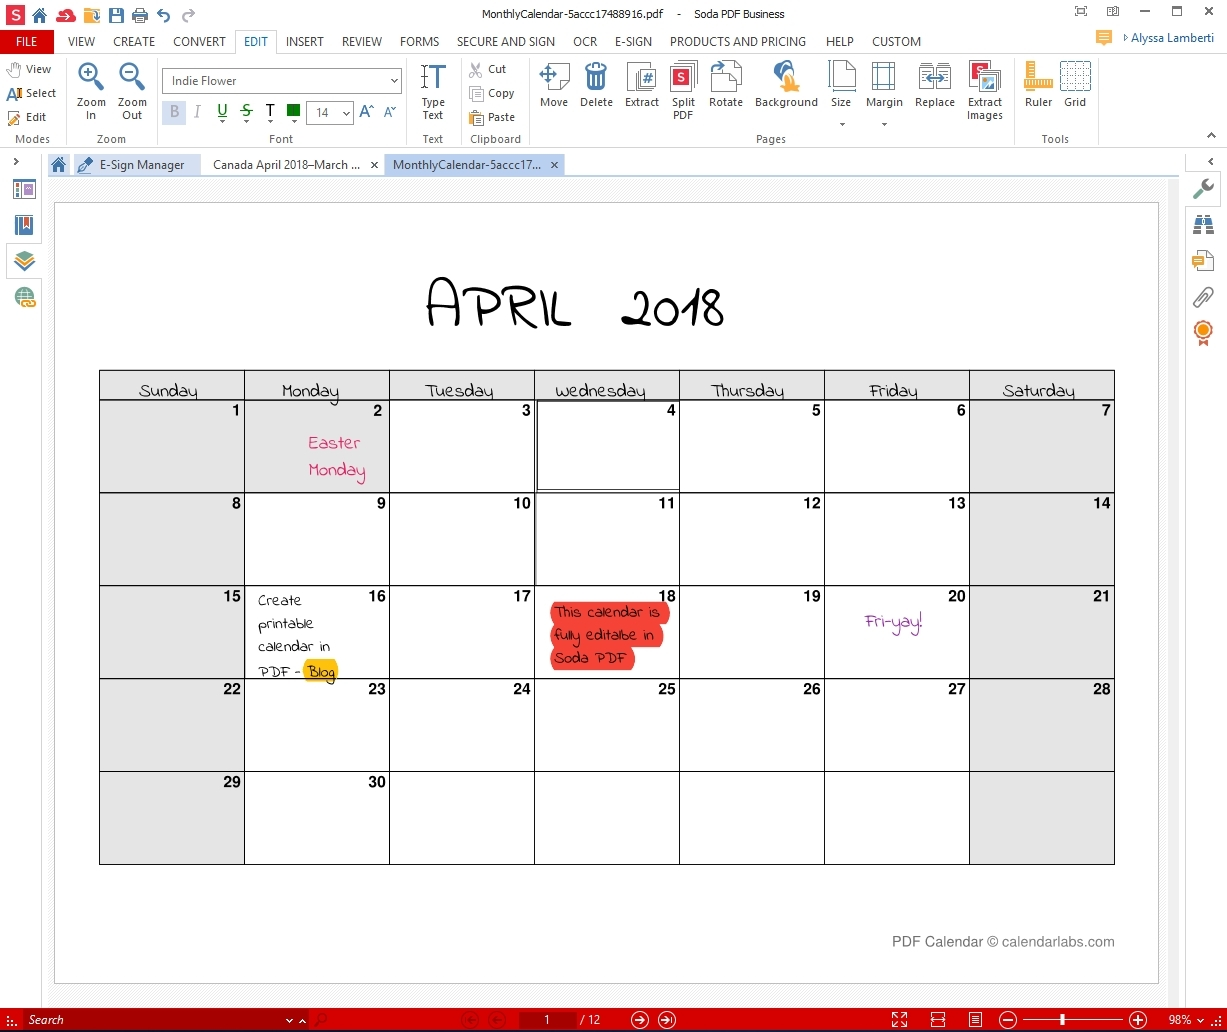 Monthly Calendar I Can Edit • Printable Blank Calendar Template-Printable Monthly Calendar That I Can Edit